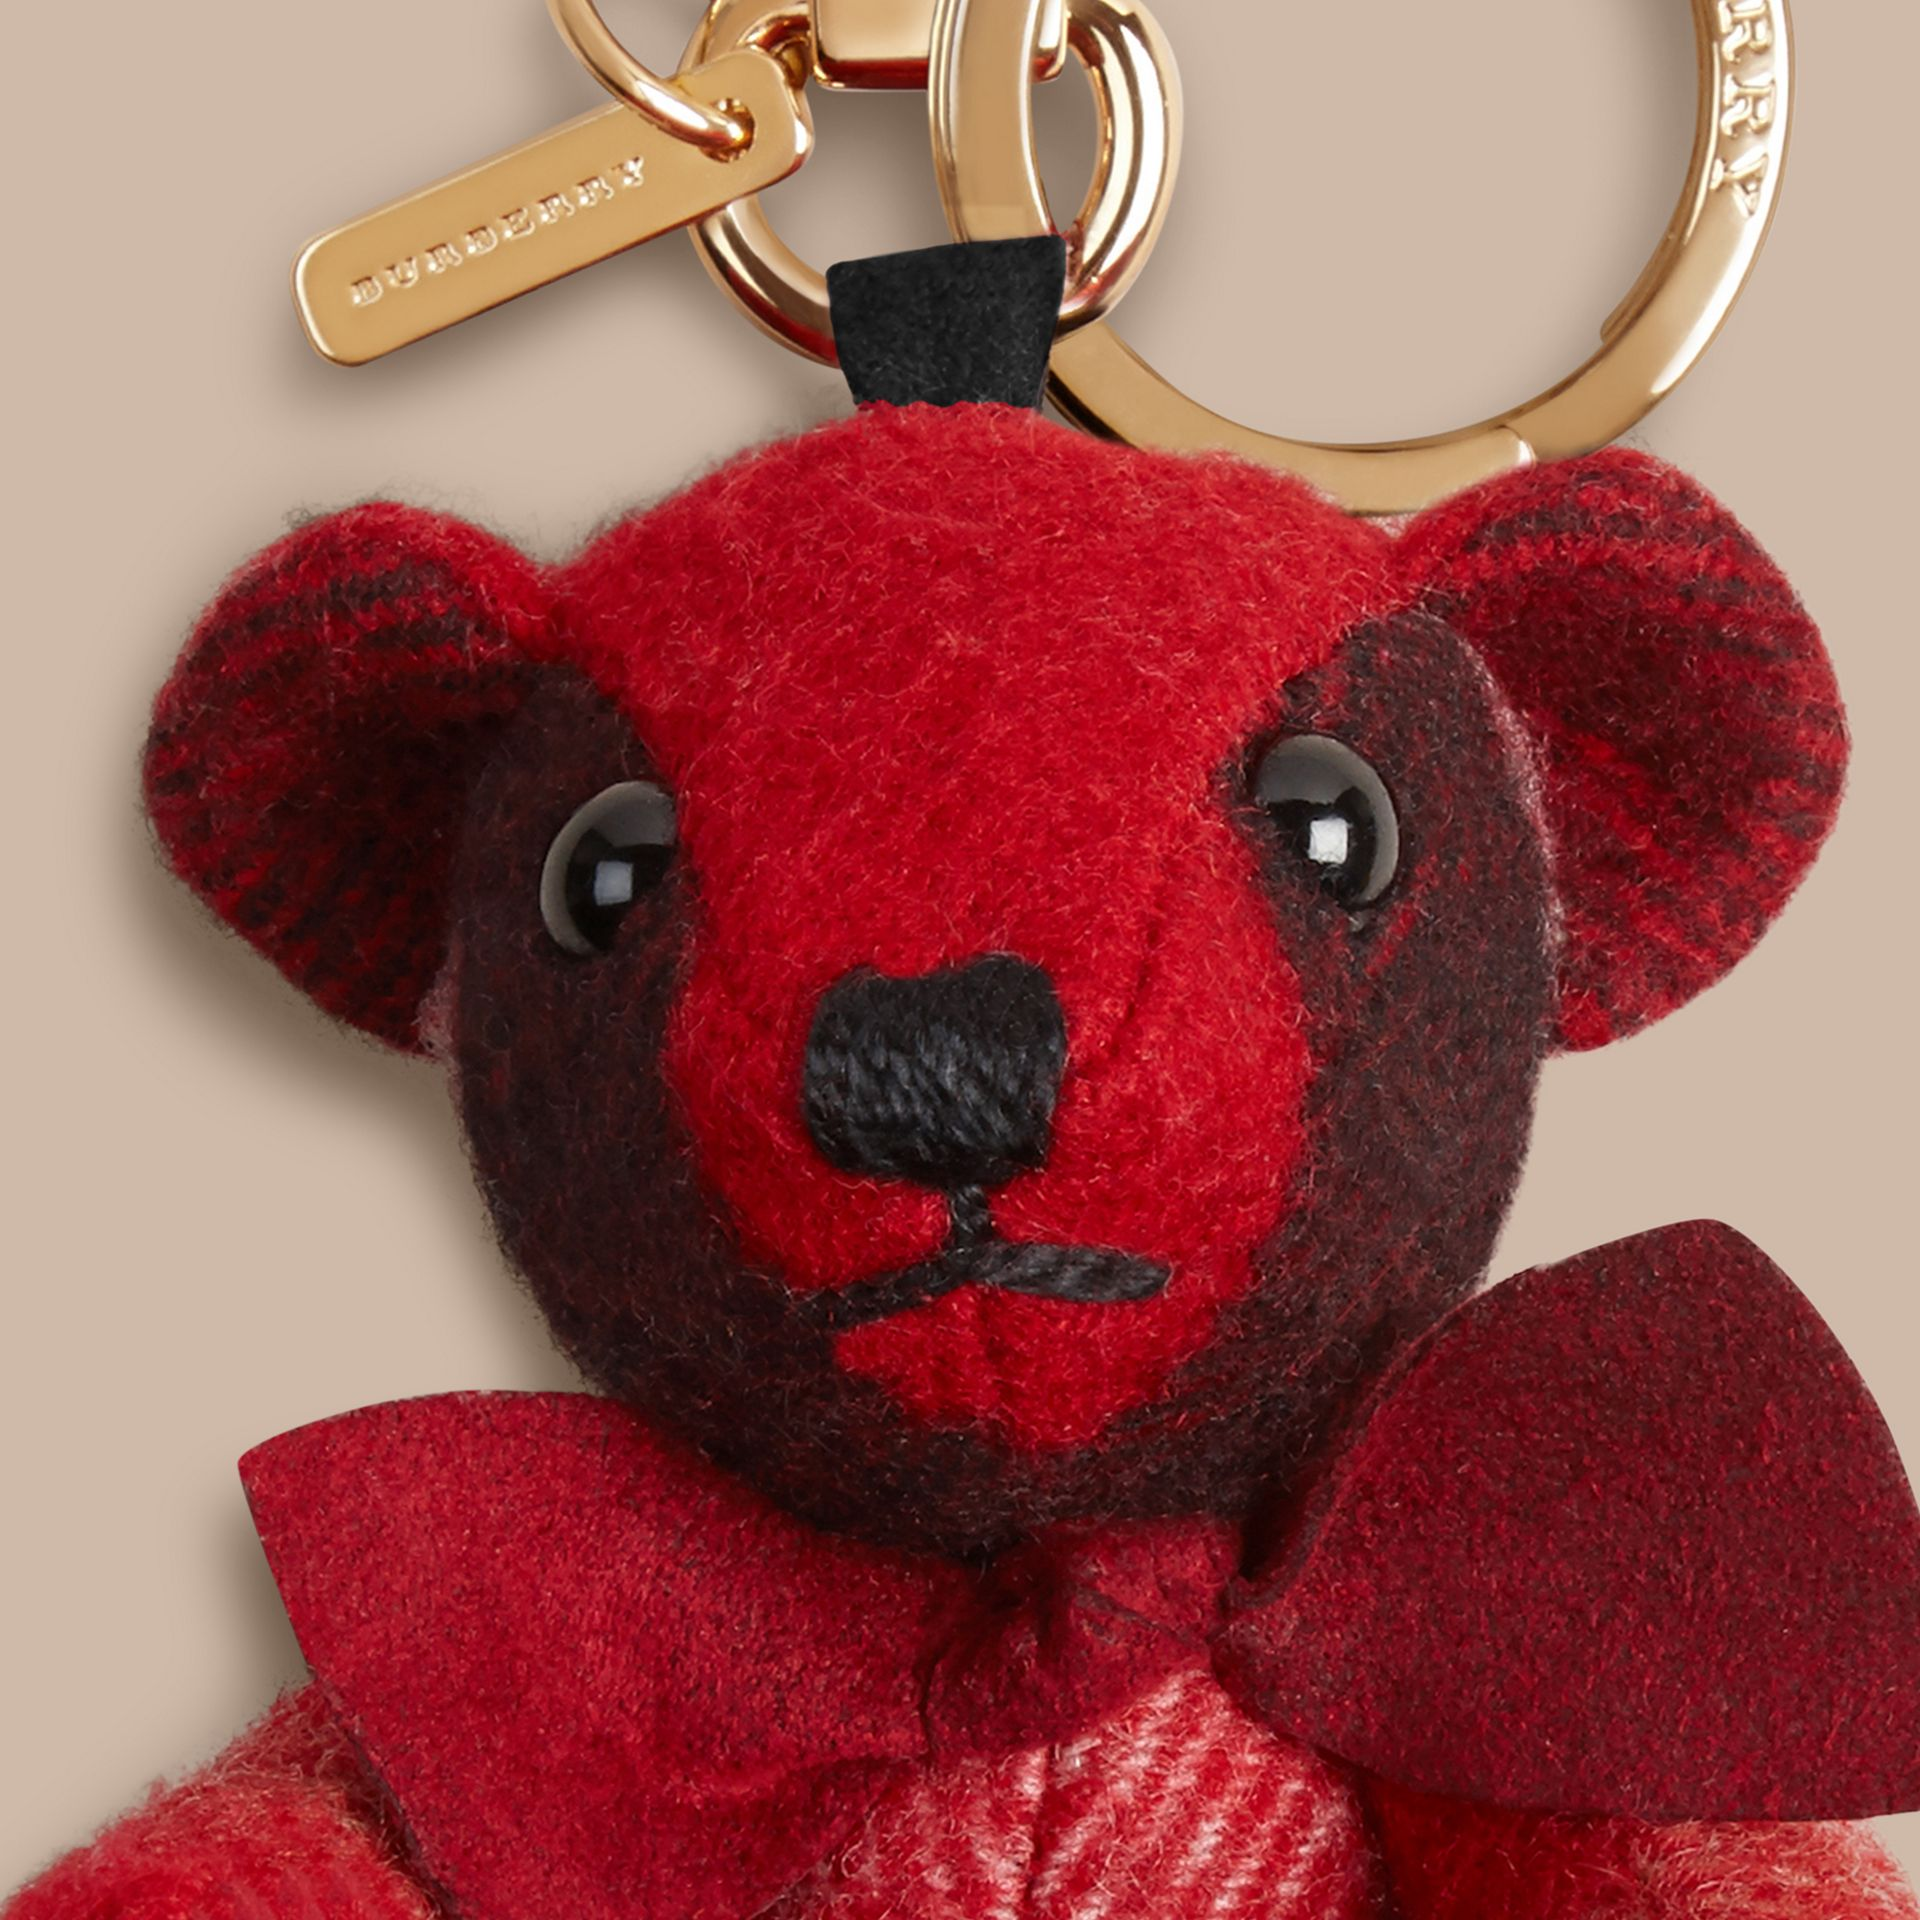 Rouge parade Bijou porte-clés Thomas Bear en cachemire à motif check Rouge Parade - photo de la galerie 2